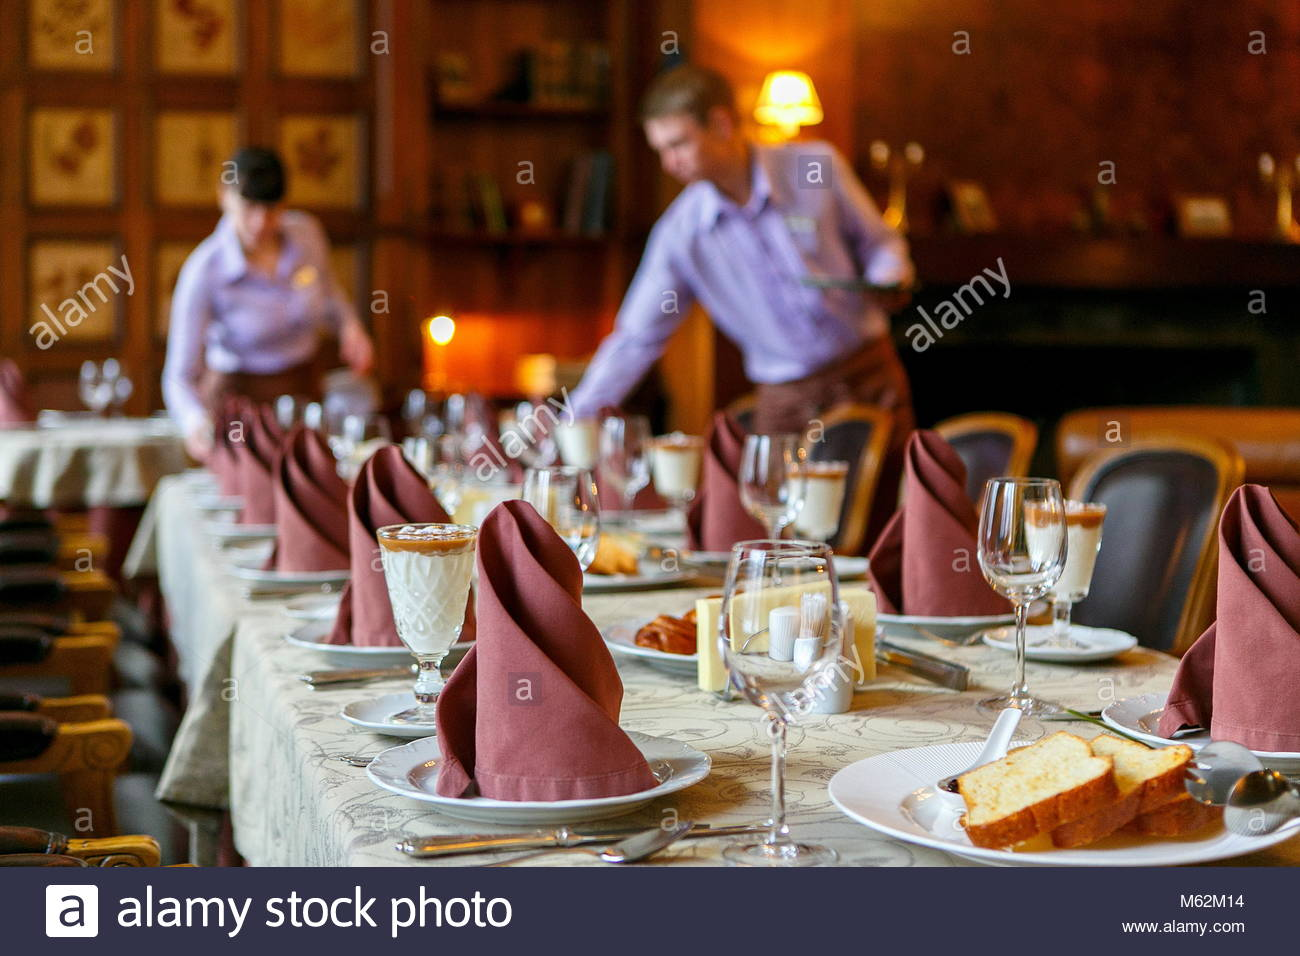 Waiters prepare a table for breakfast Background The foreground 1300x956